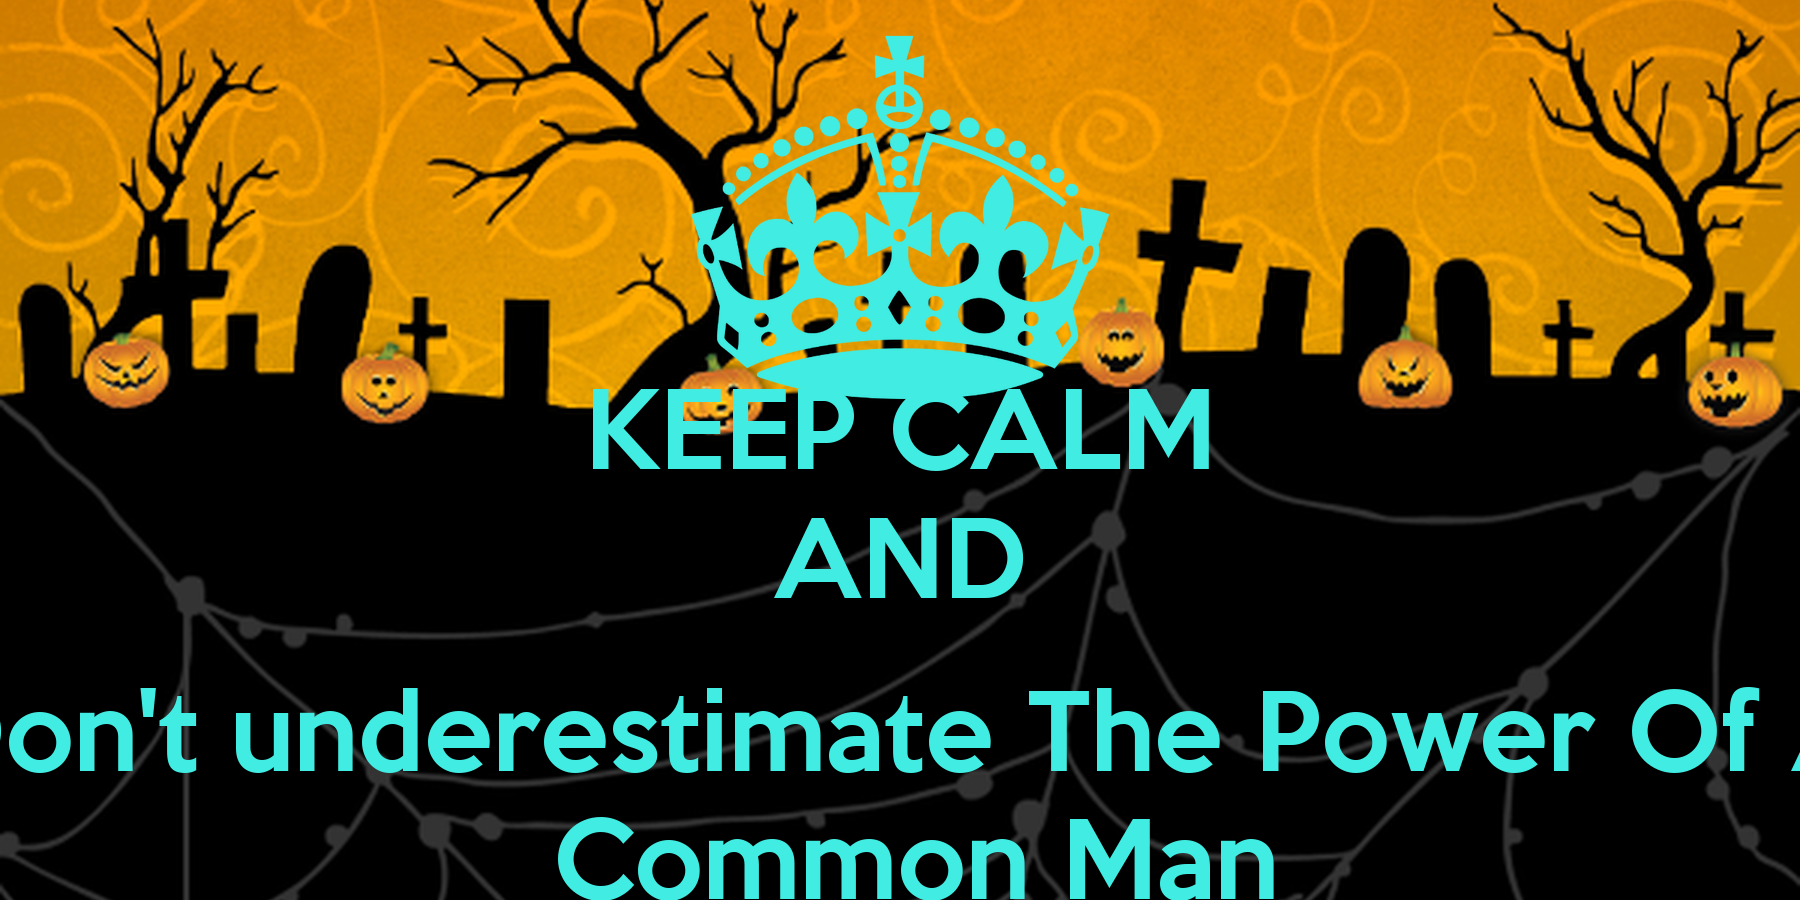 ... The Power Of A Common Man - KEEP CALM AND CARRY ON Image Generator A Common Man Poster